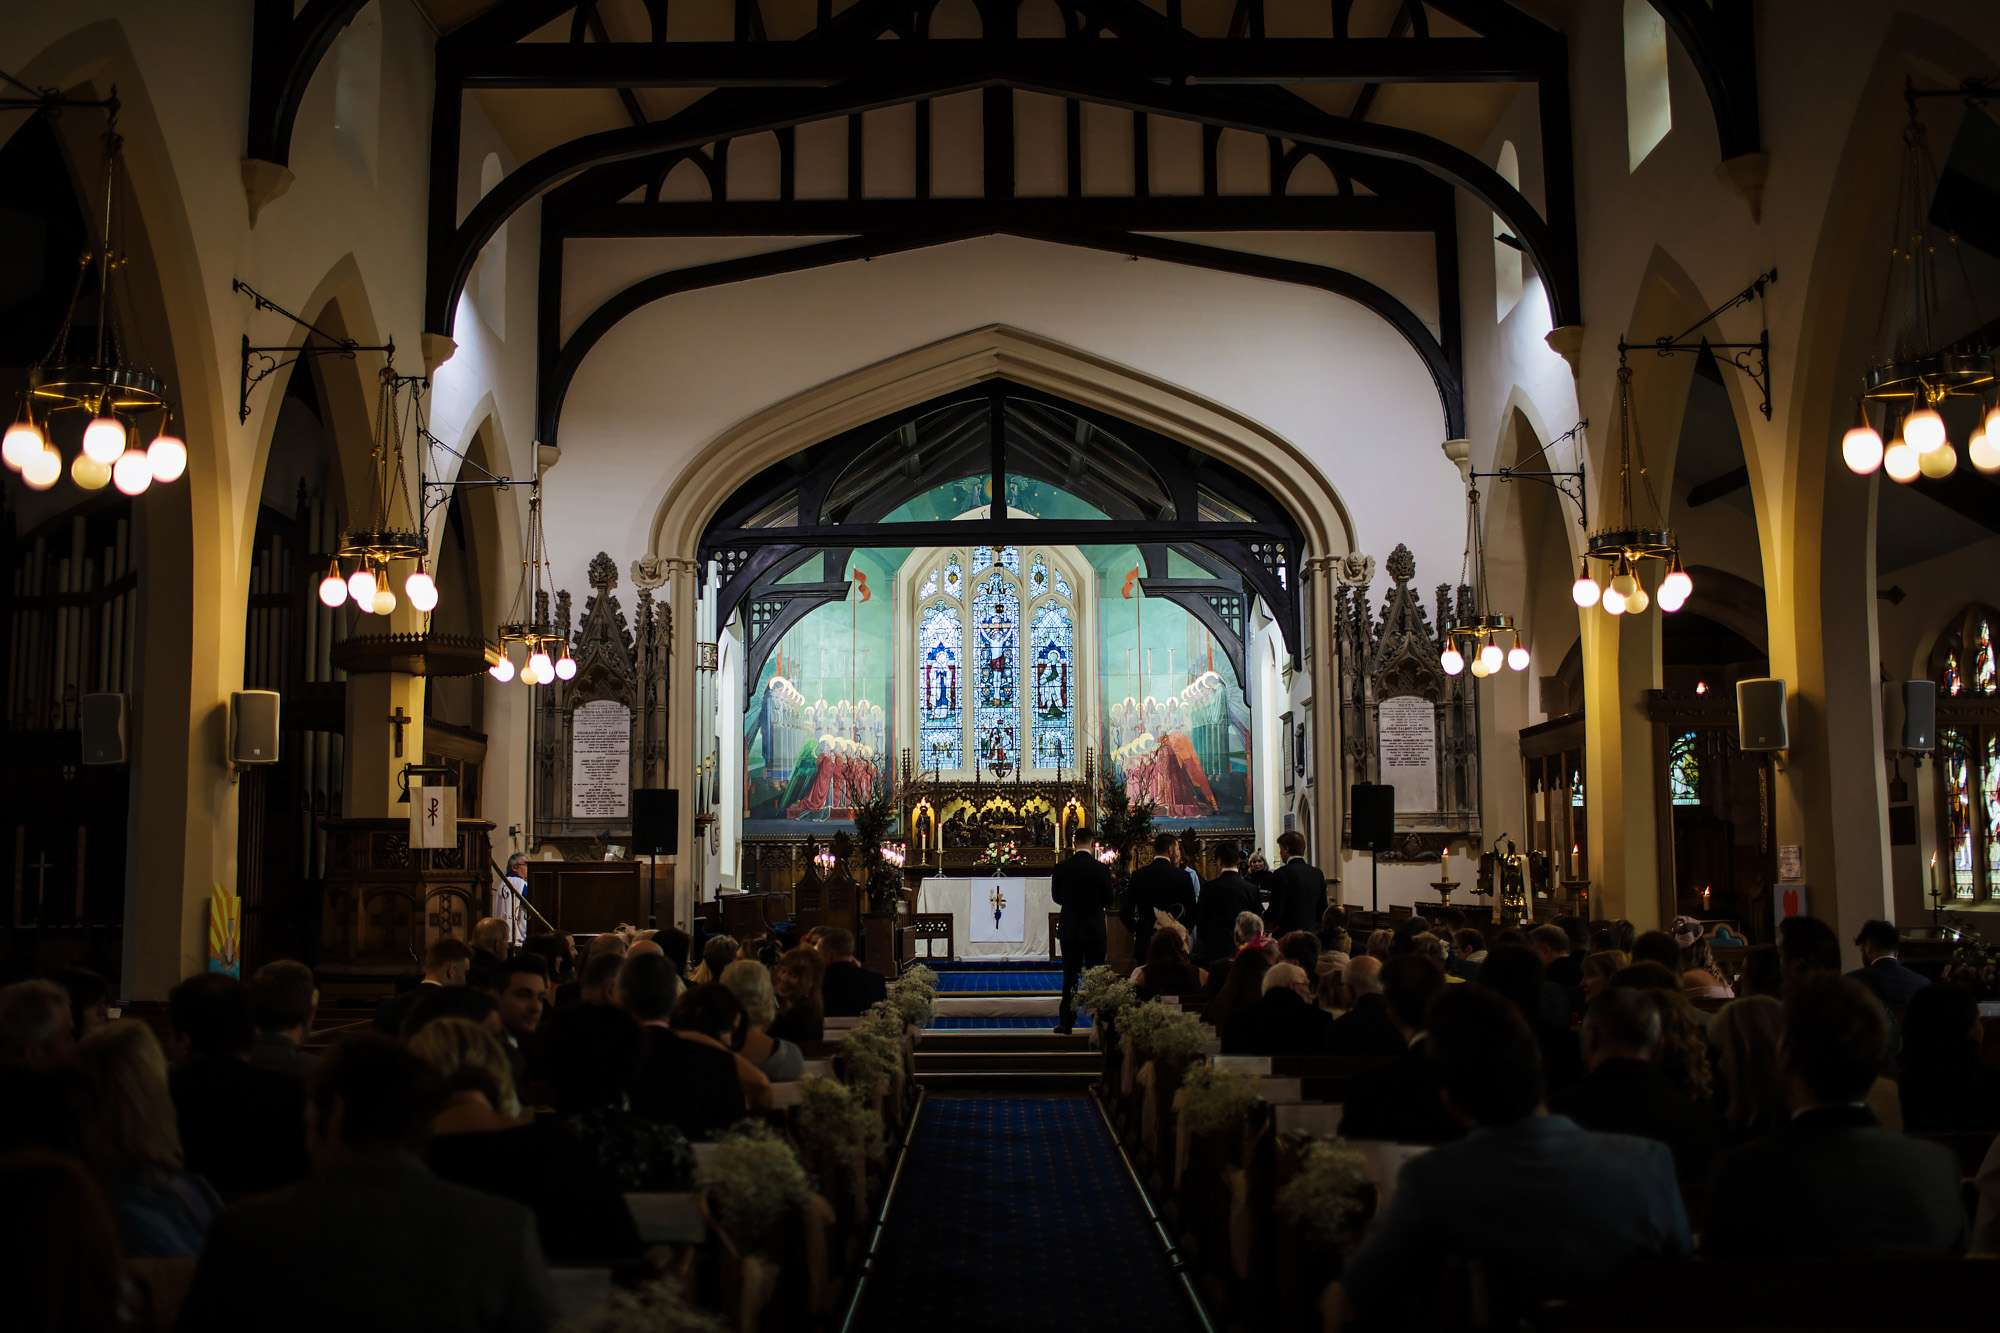 Interior of the church at a Blackpool wedding